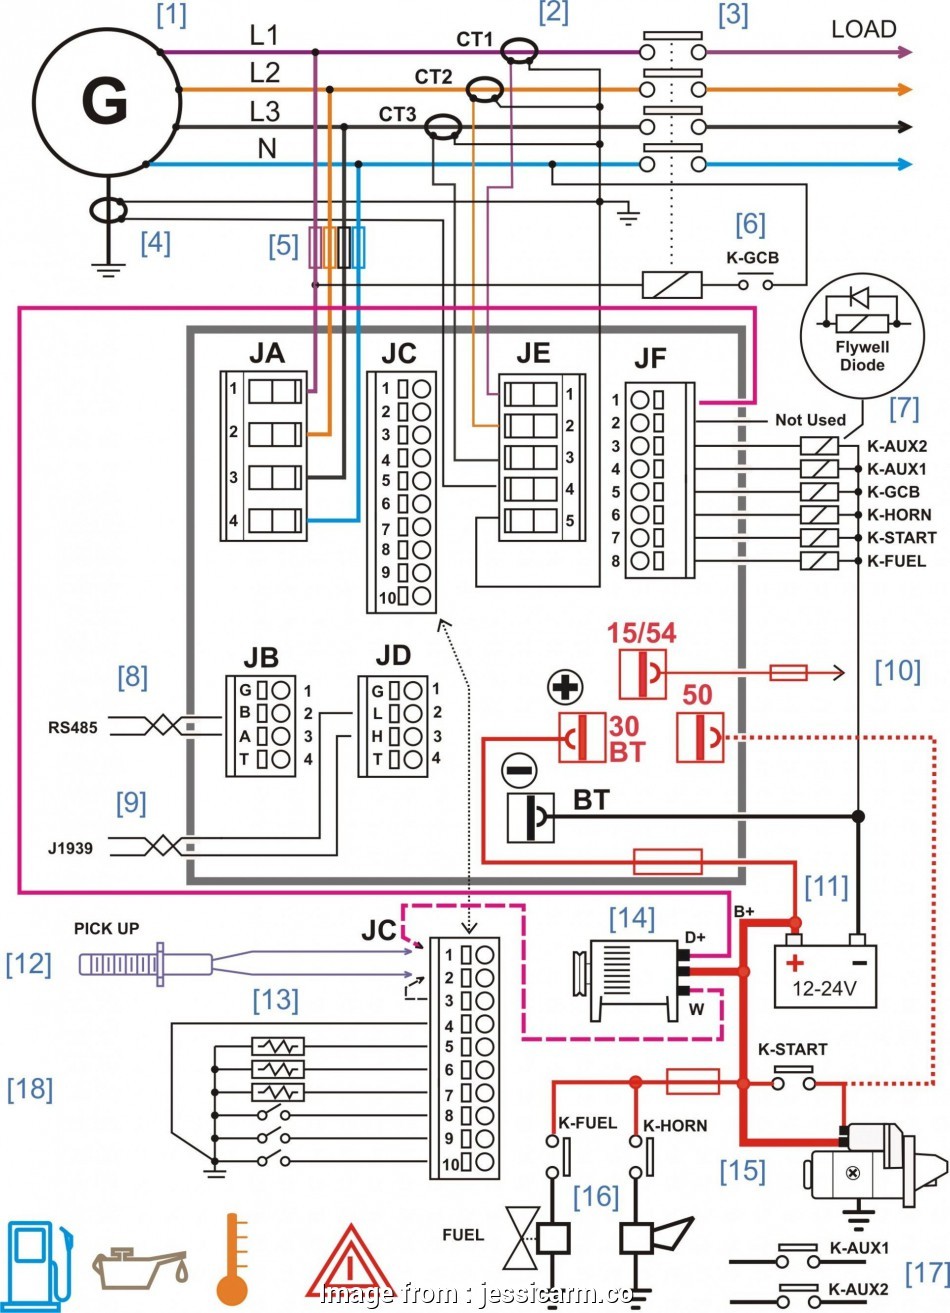 electrical panel board wiring diagram download Wiring Diagram Of Main Distribution Board Free Download Wiring 19 Brilliant Electrical Panel Board Wiring Diagram Download Images